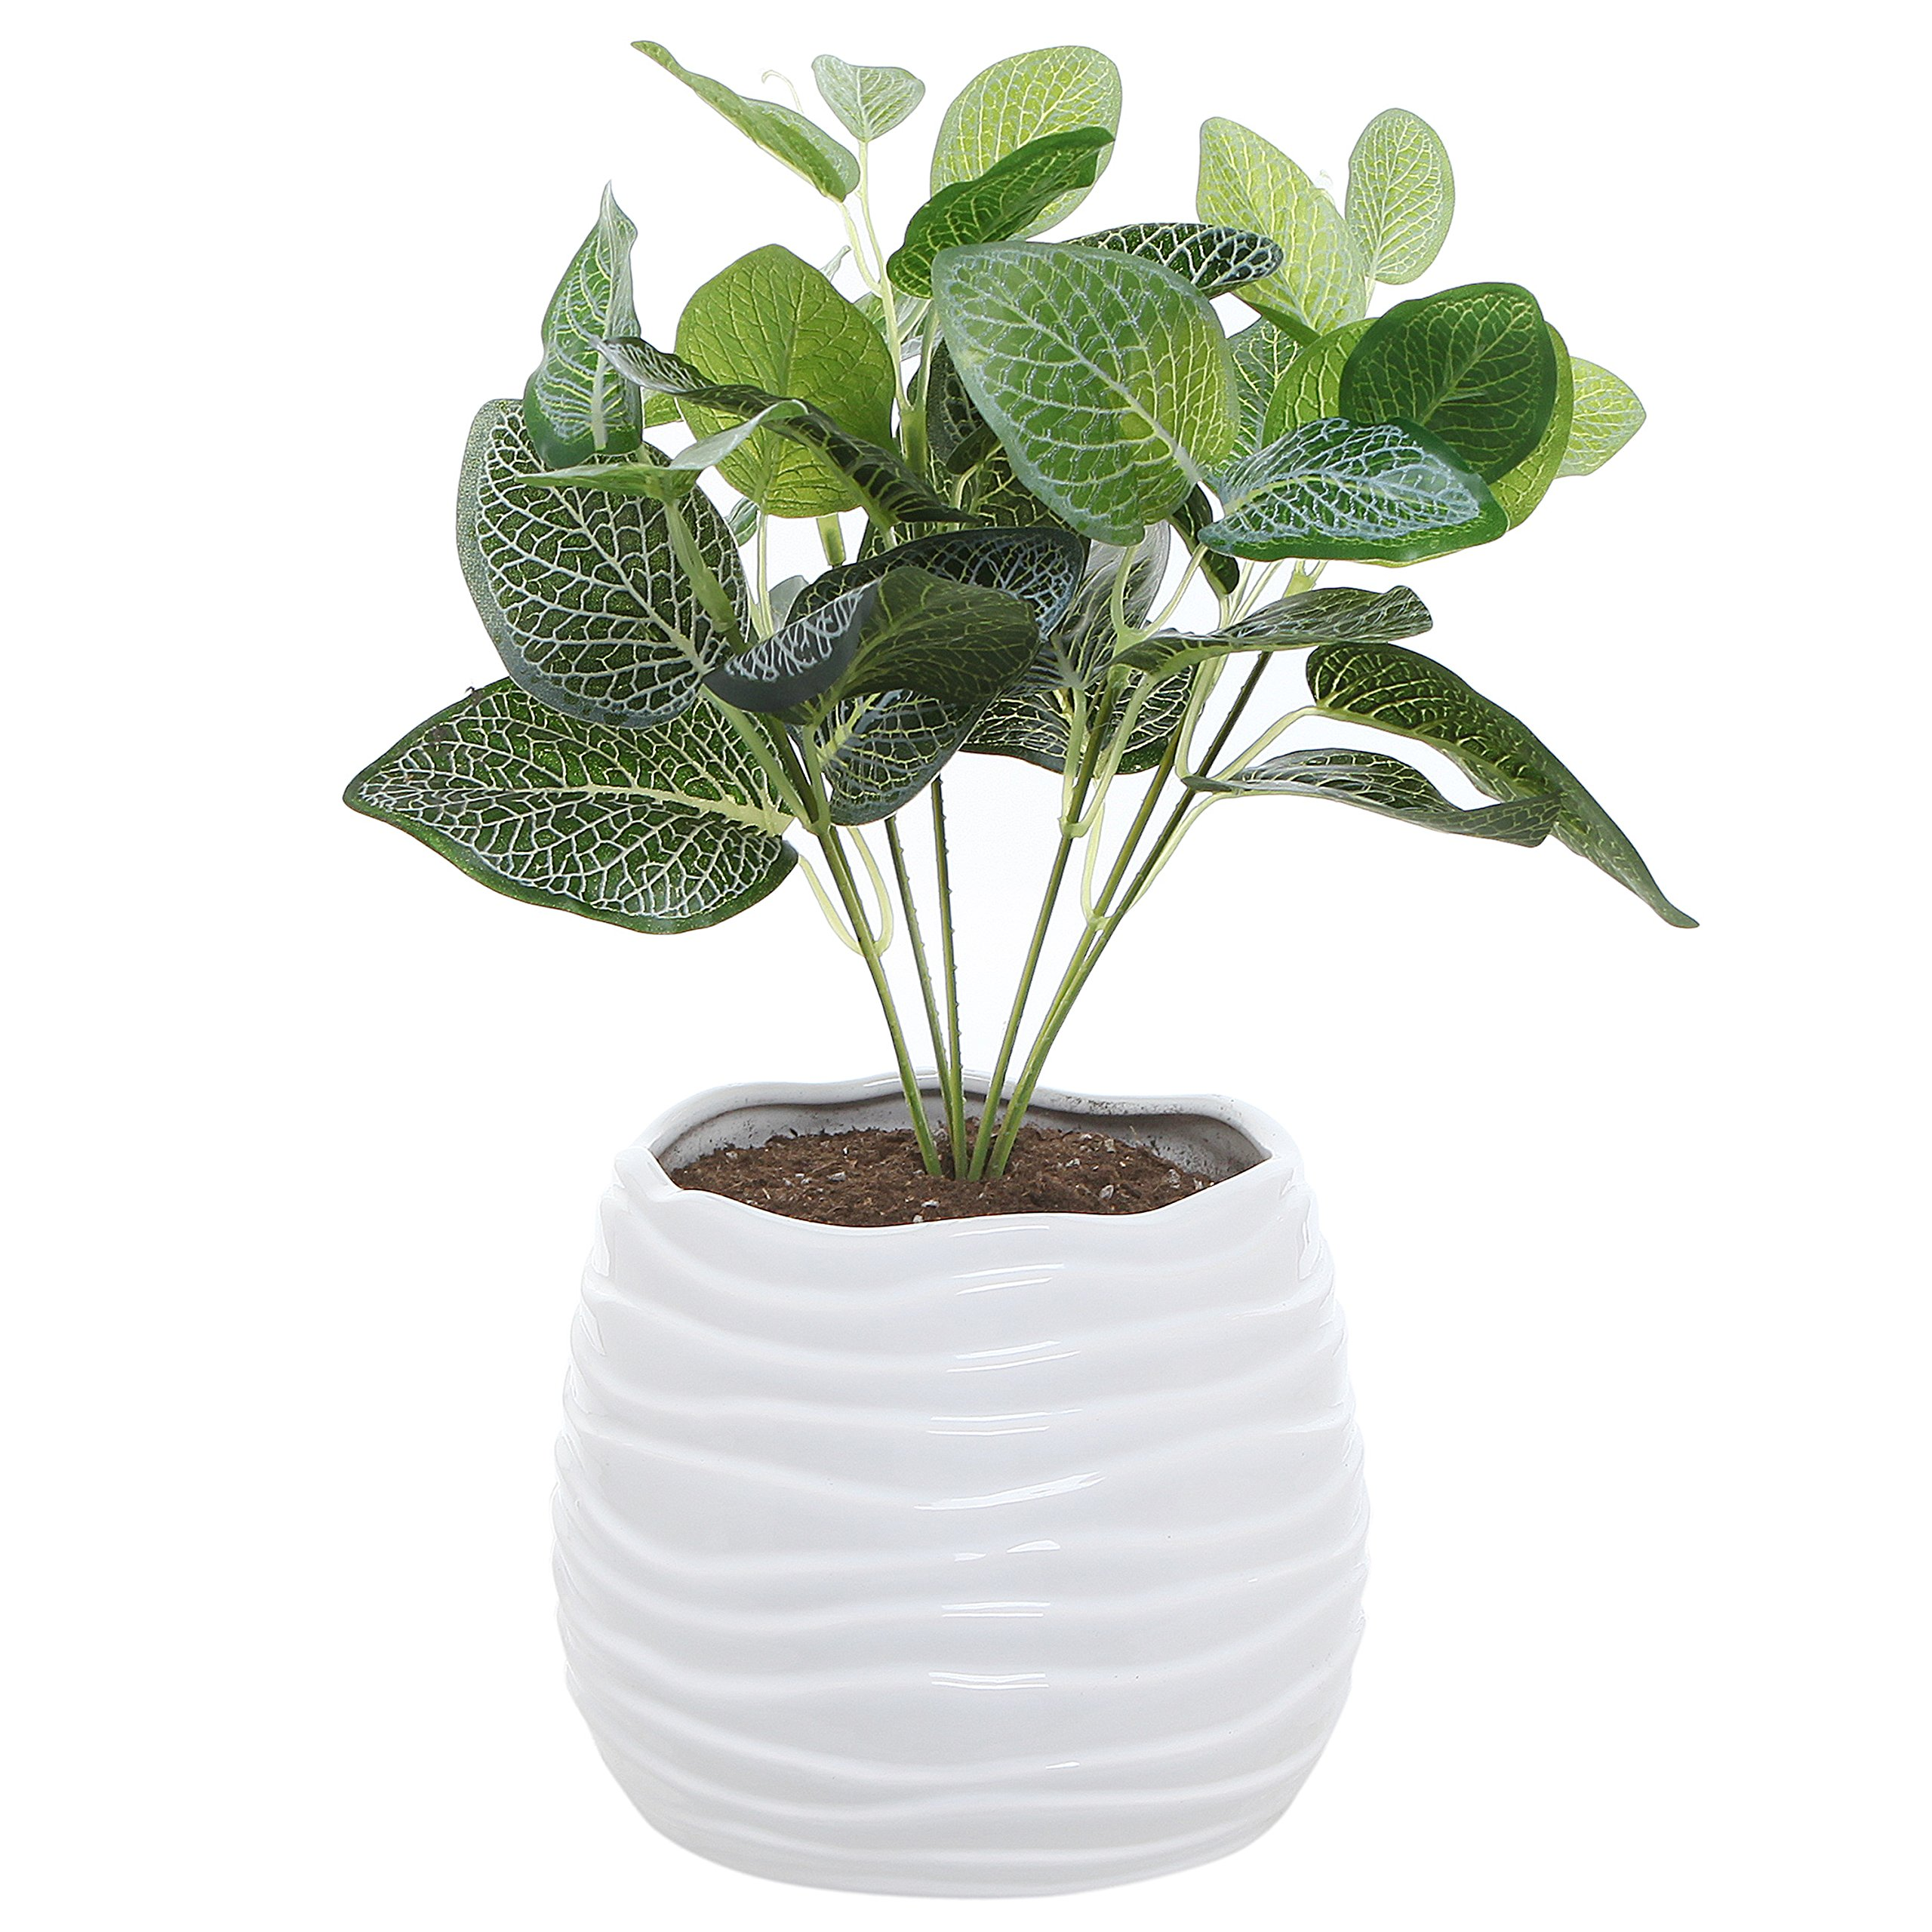 5.5 Inch White Ceramic Wavy Design Plant Flower Planter Container Pot / Decorative Centerpiece Bowl Vase by MyGift